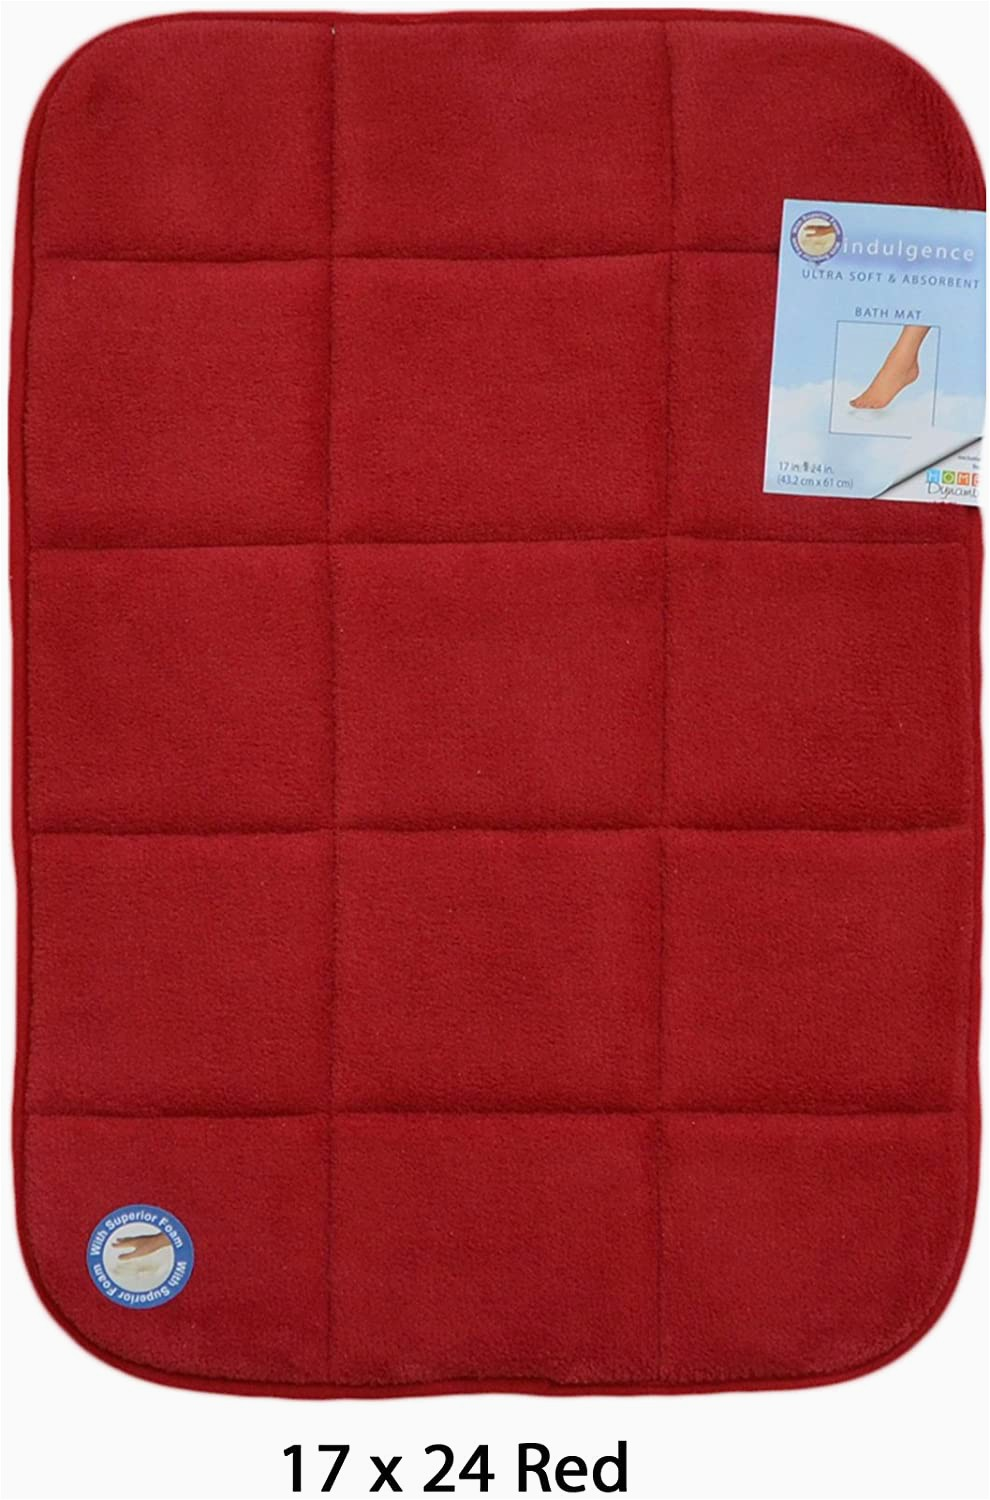 Red Memory Foam Bathroom Rugs Red Memory Foam Bath Mat area Rug Non Skid Absorbent 17 X 24 or 20 X 30 Square Box 17×24